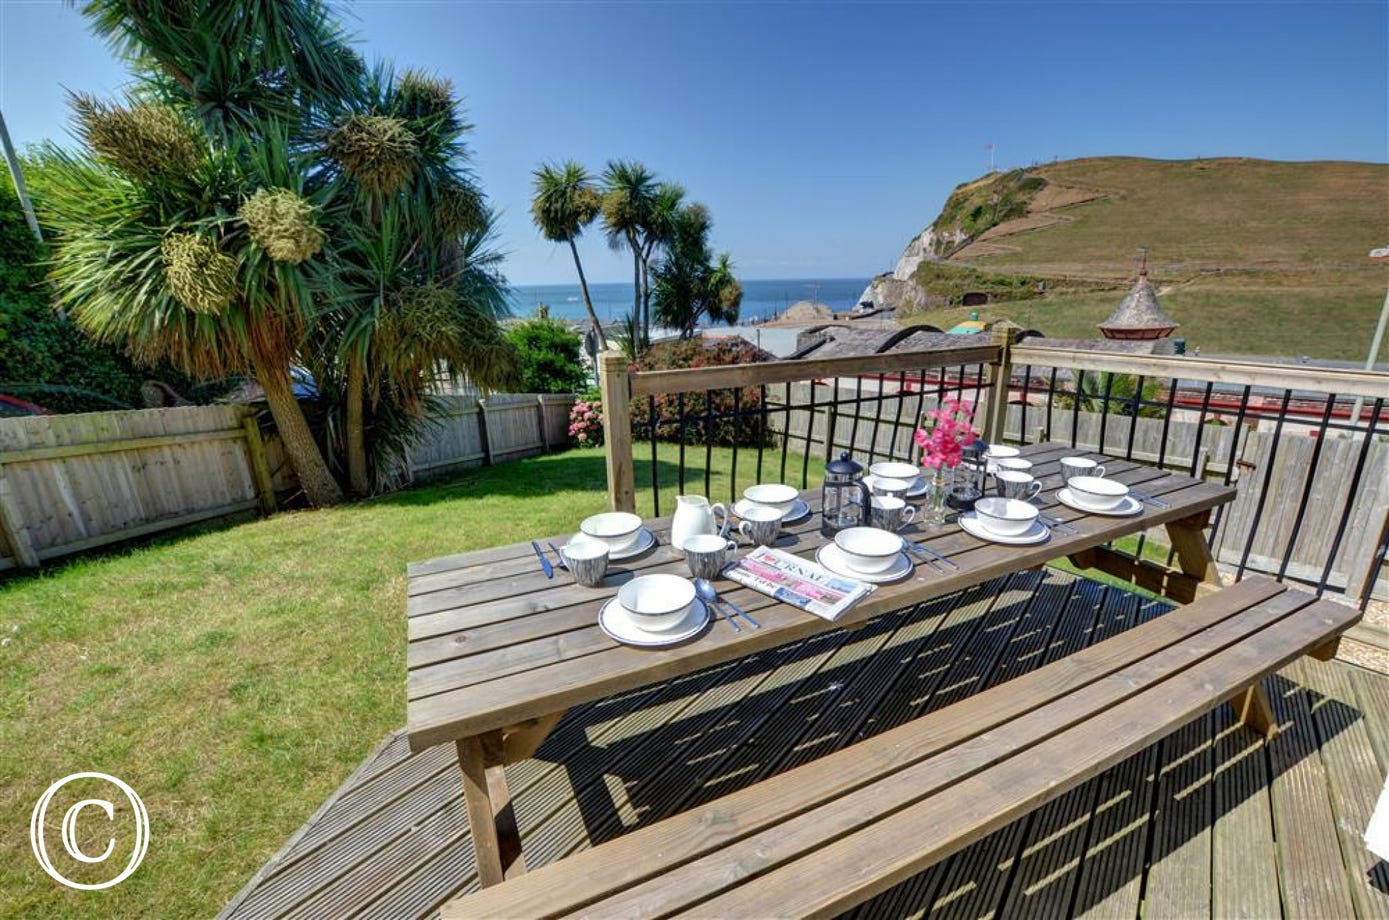 A fantastic spot to have breakfast together - palm trees and sea views!